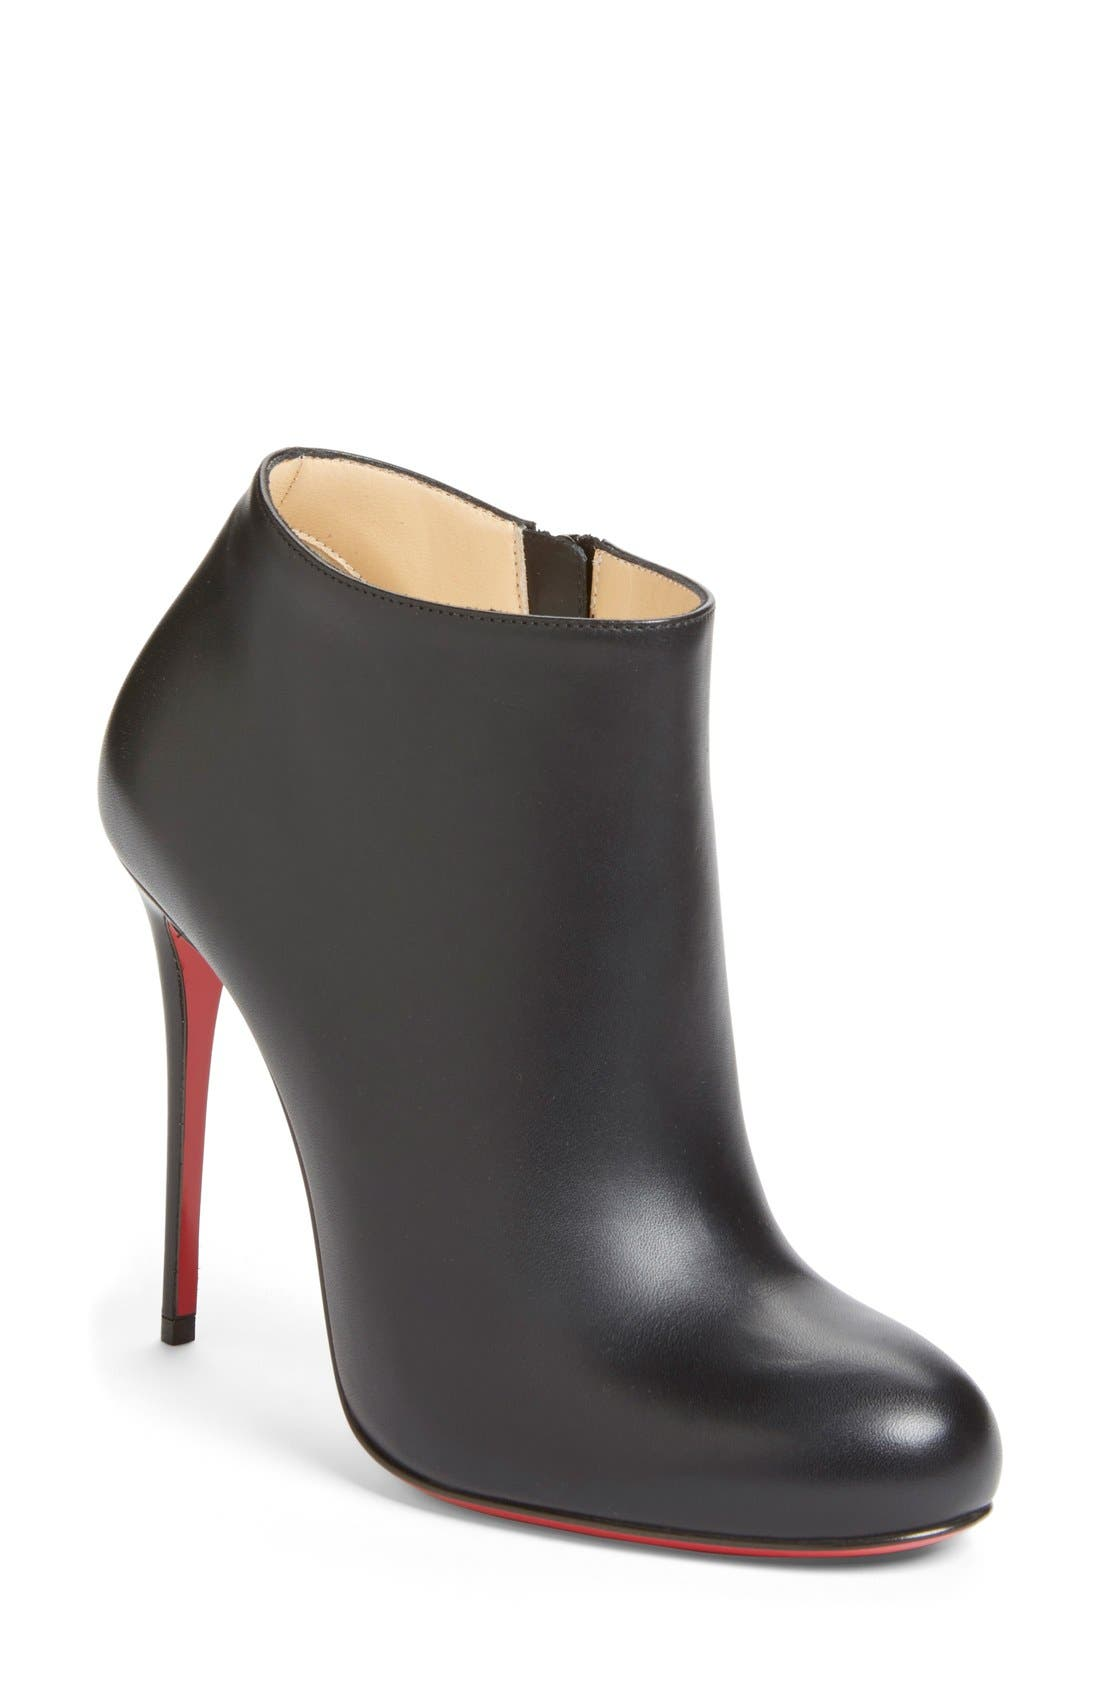 christian louboutin bellissima reviews